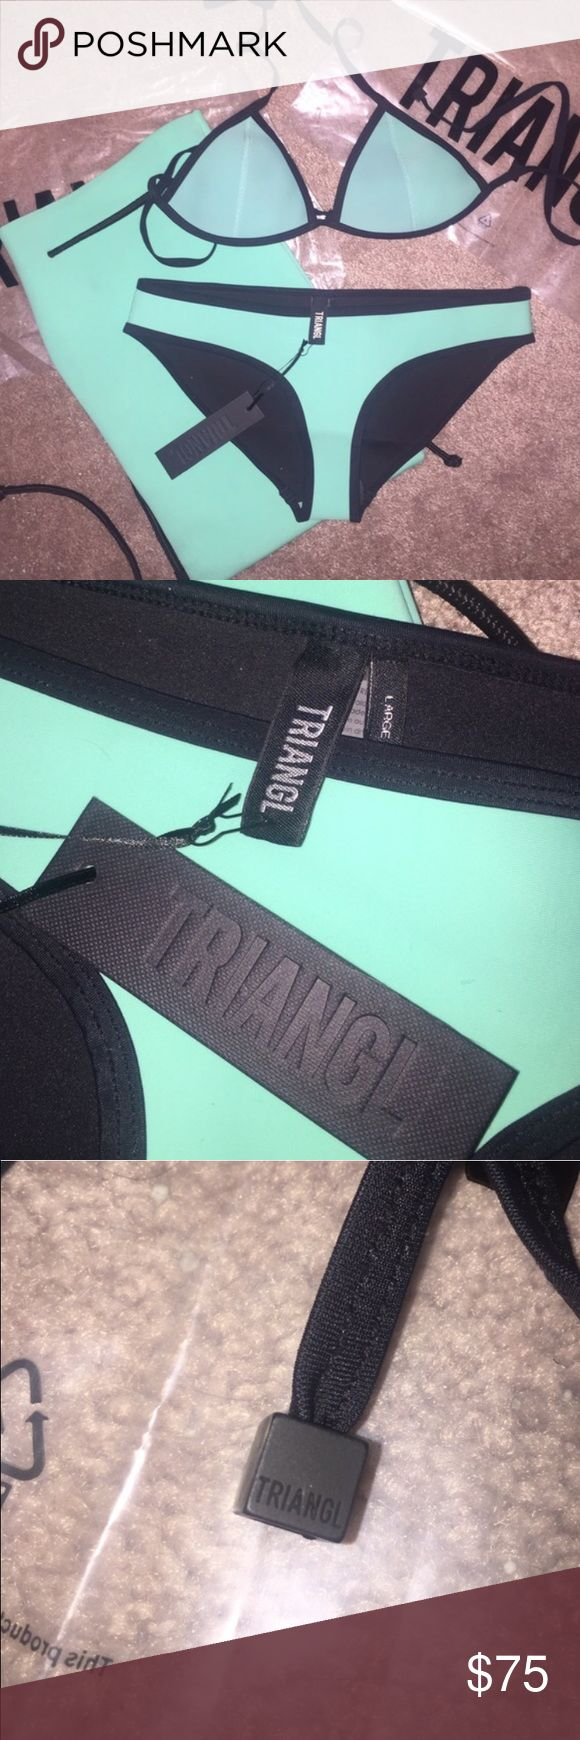 BRAND NEW Triangl Bikini BRAND NEW!! Authentic triangl bikini! Small top and large bottoms. Comes with original bags! Hypoallergenic liners still on bikini bottoms triangl swimwear Swim Bikinis